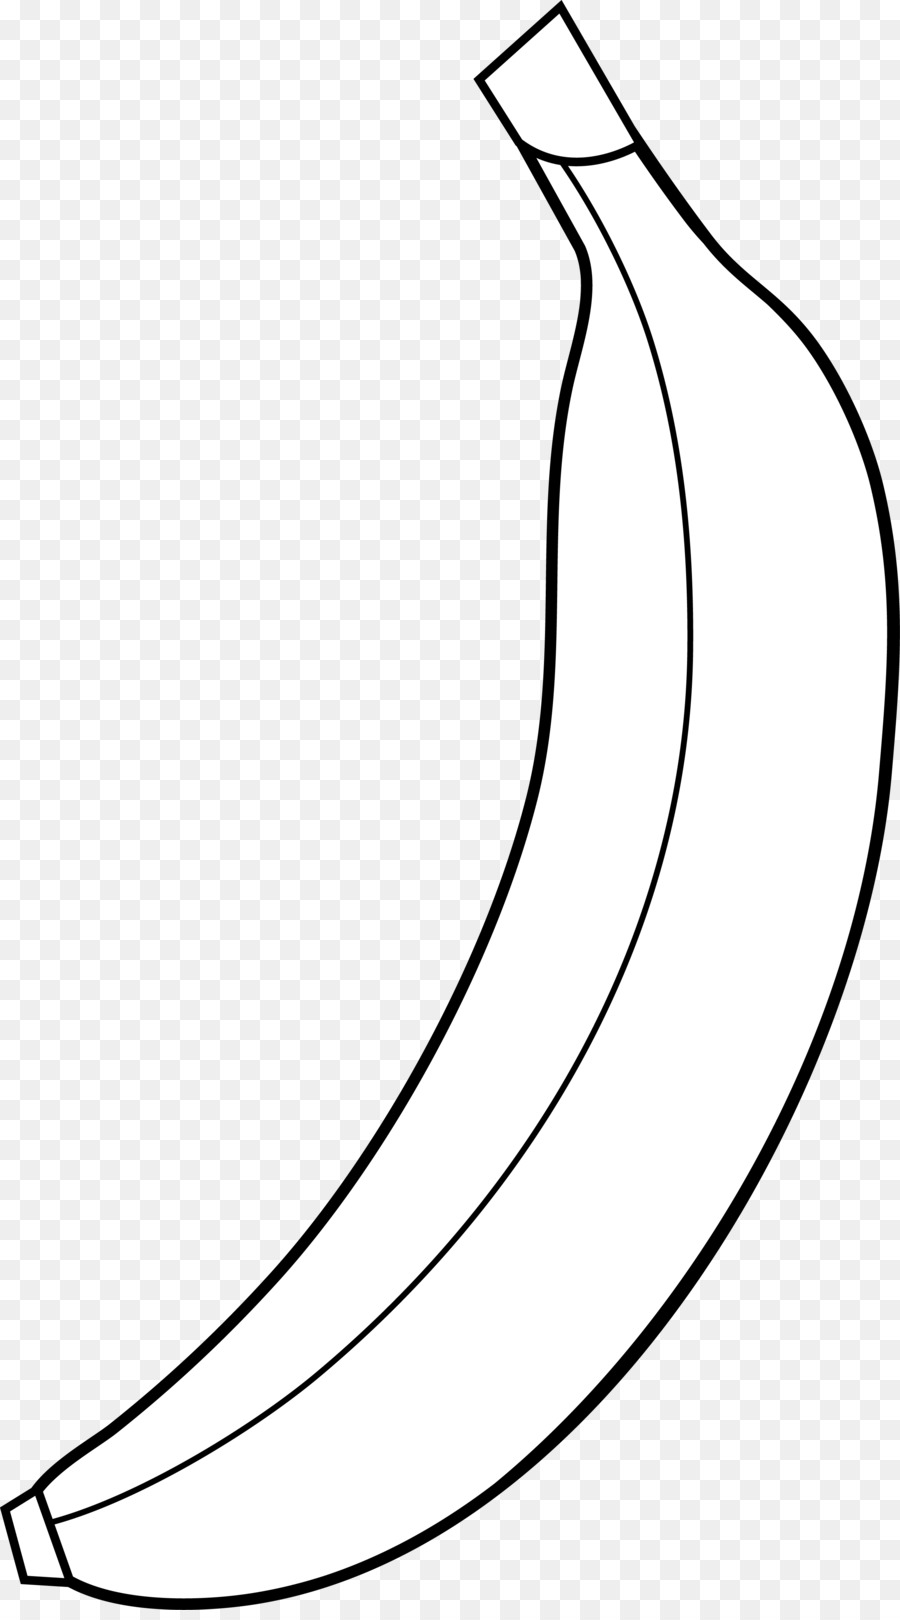 Banana clipart outline. Black and white drawing